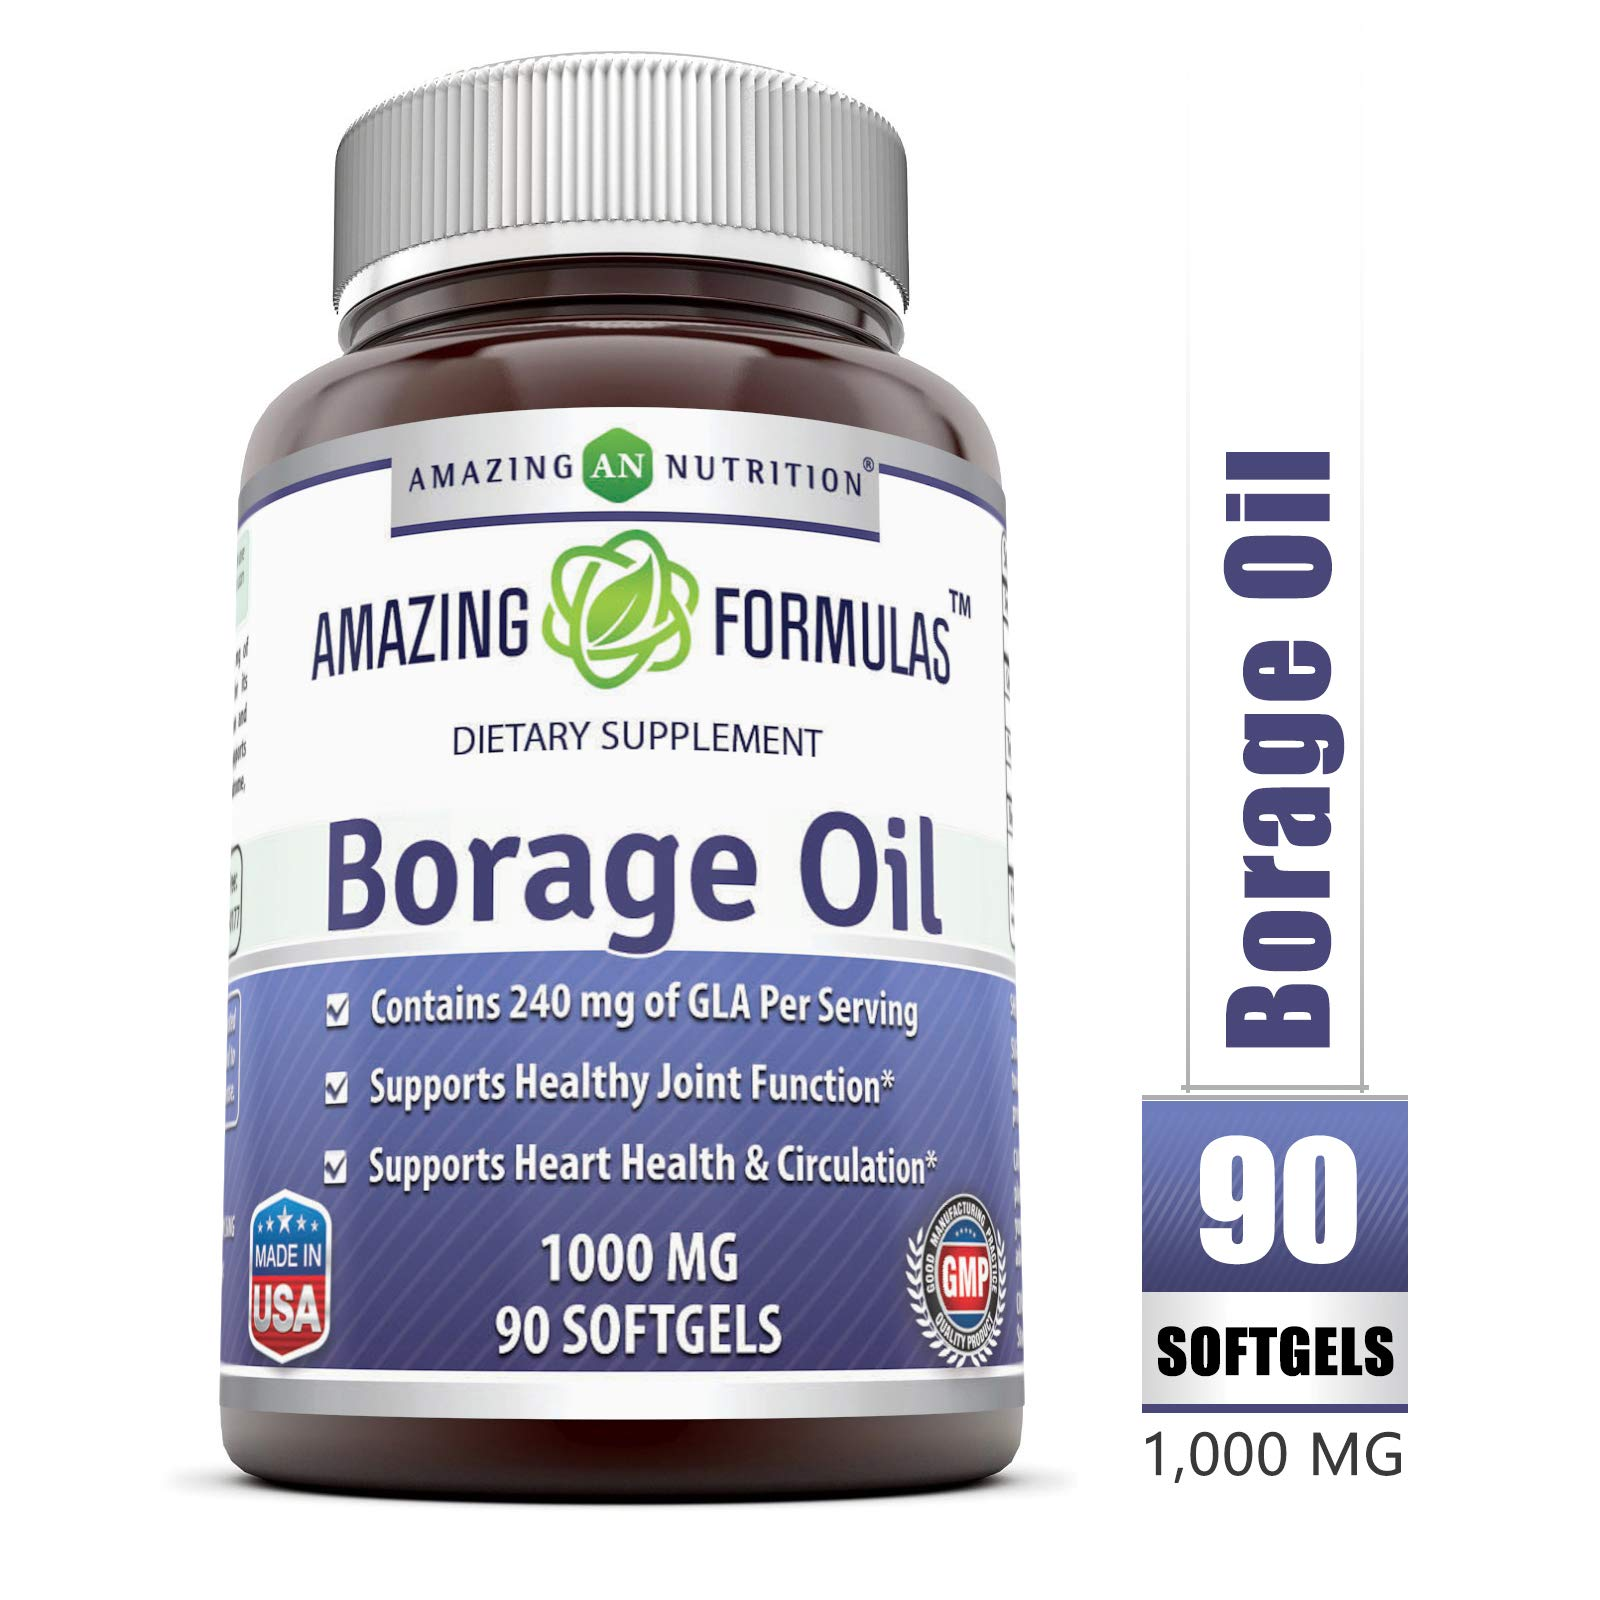 Amazing Formulas Borage Oil Dietary Supplement - 1000mg Capsules -90 SoftGels Per Bottle - 240mg Gamma Linoleic Acid (GLA) and 380mg Linoleic Acid -90 SoftGels Per Bottle by Amazing Nutrition